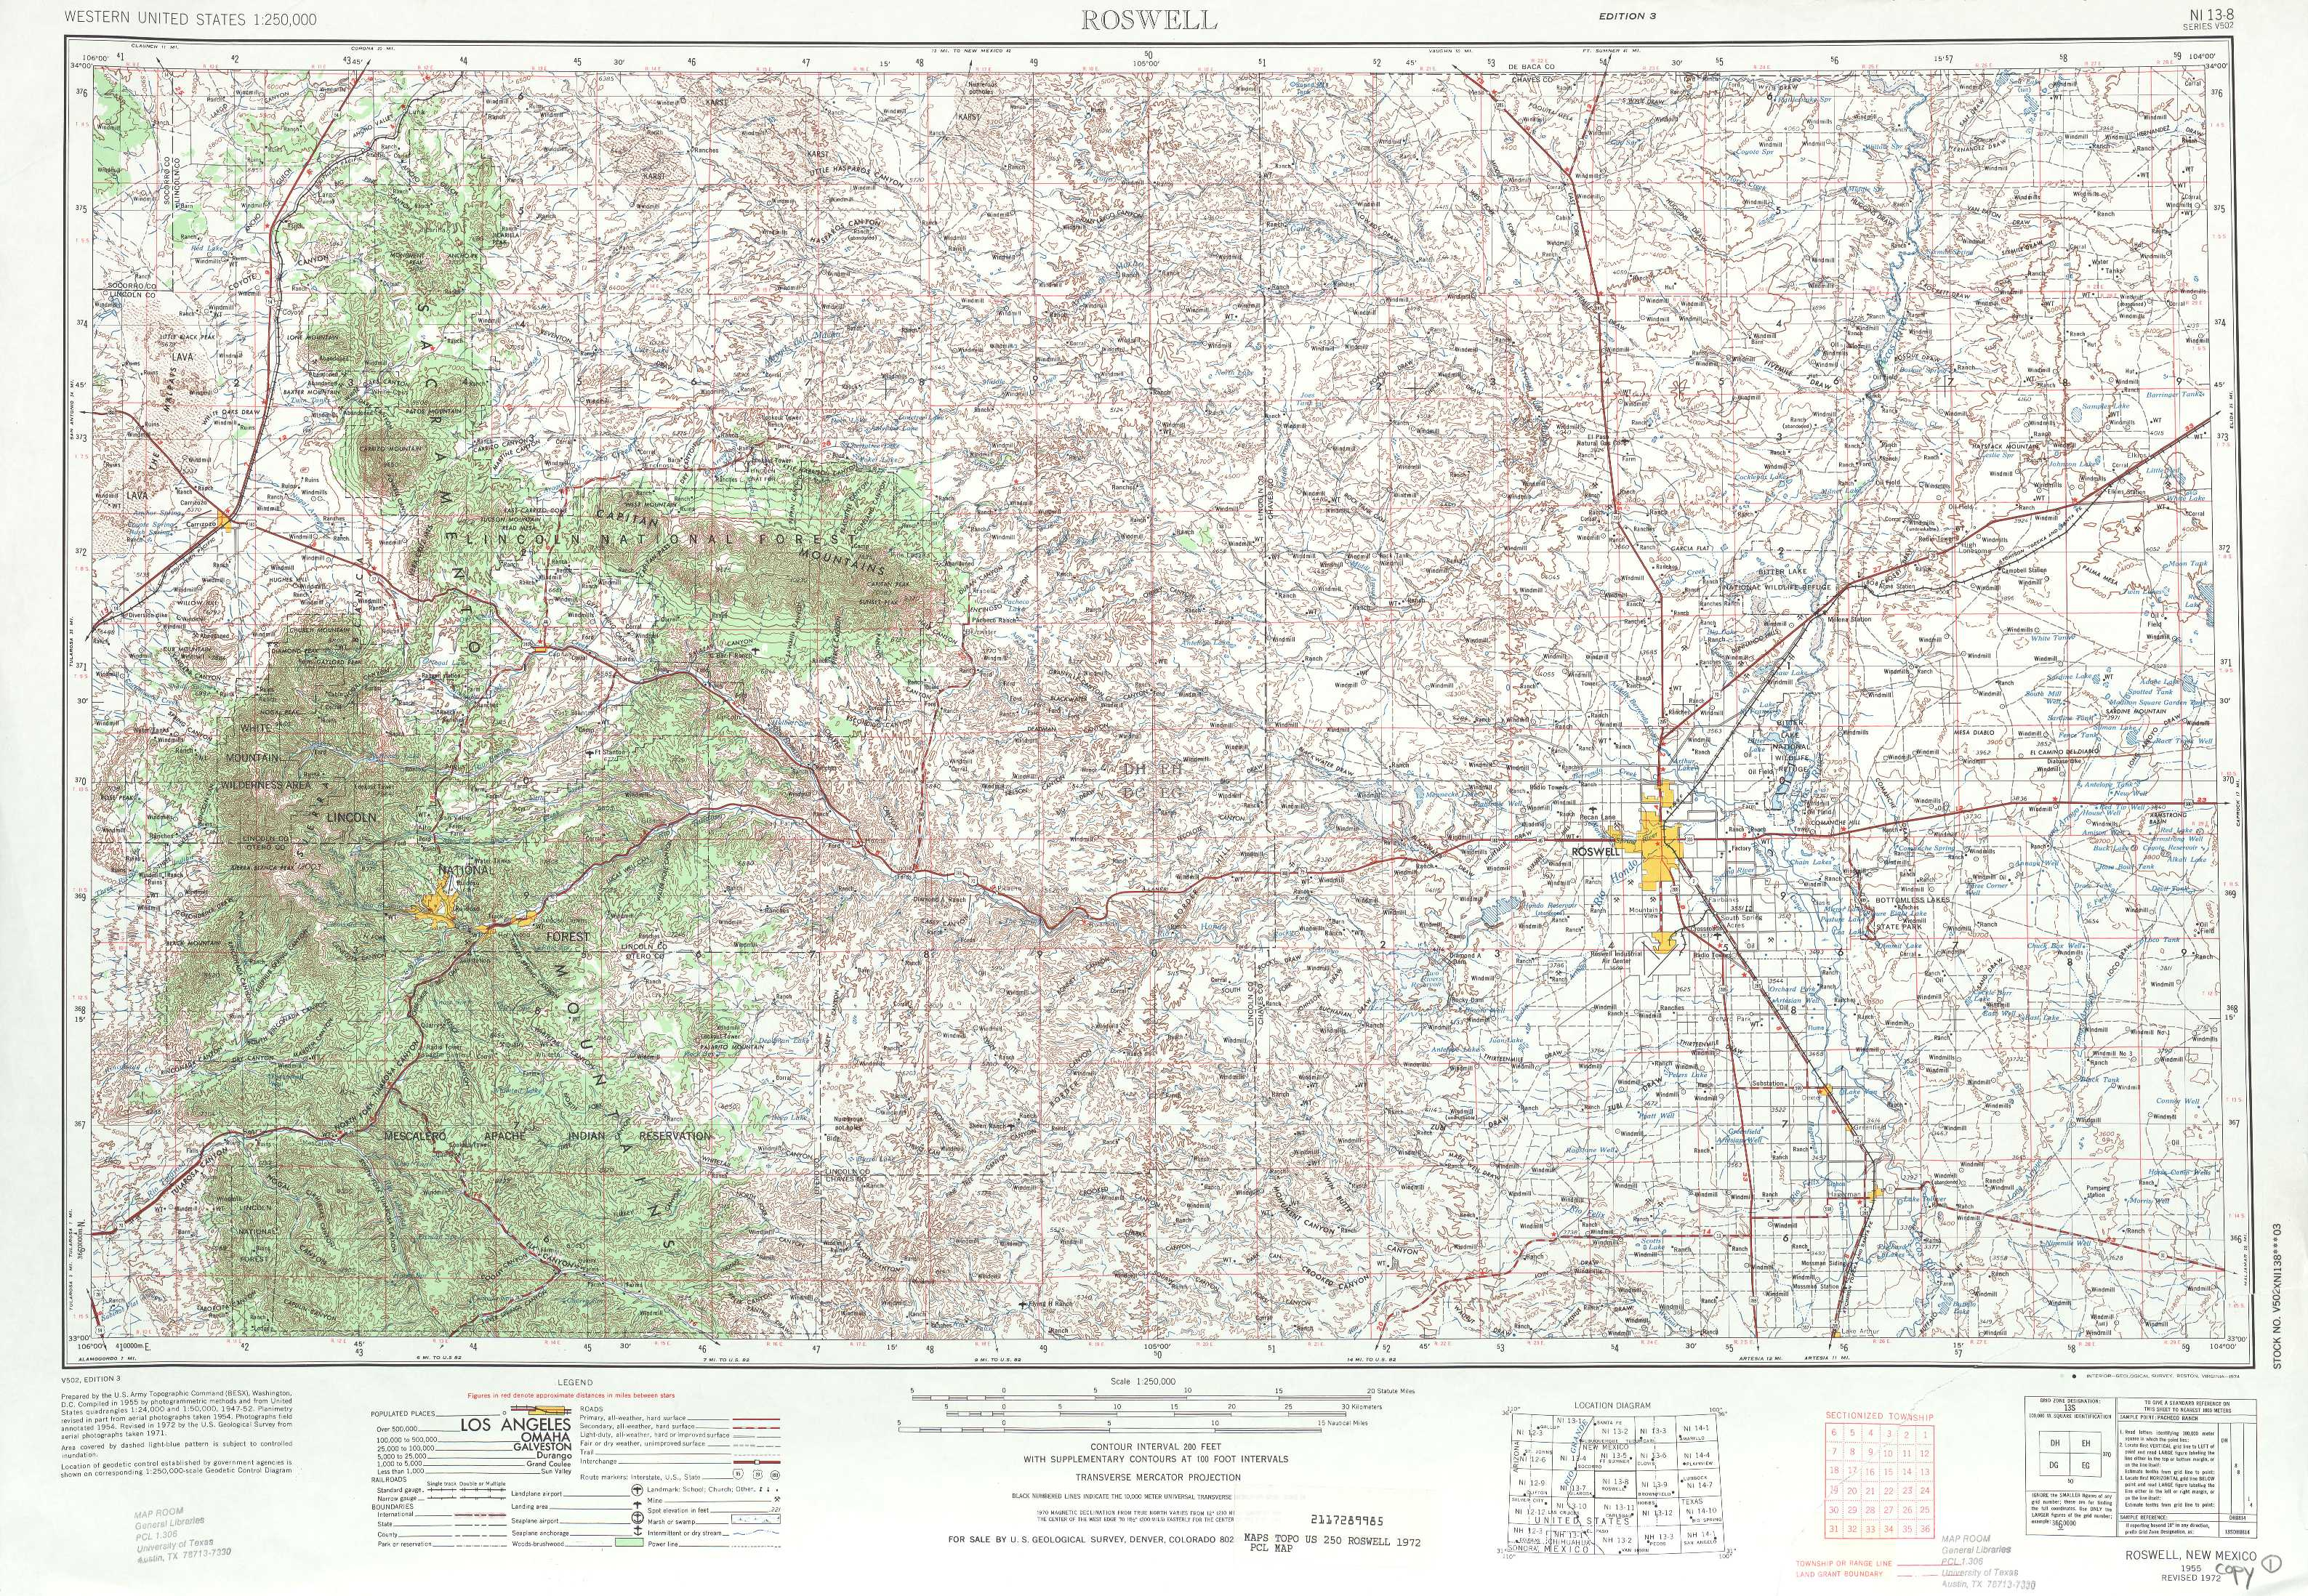 Roswell Topographic Maps NM USGS Topo Quad A At - New mexico elevation map